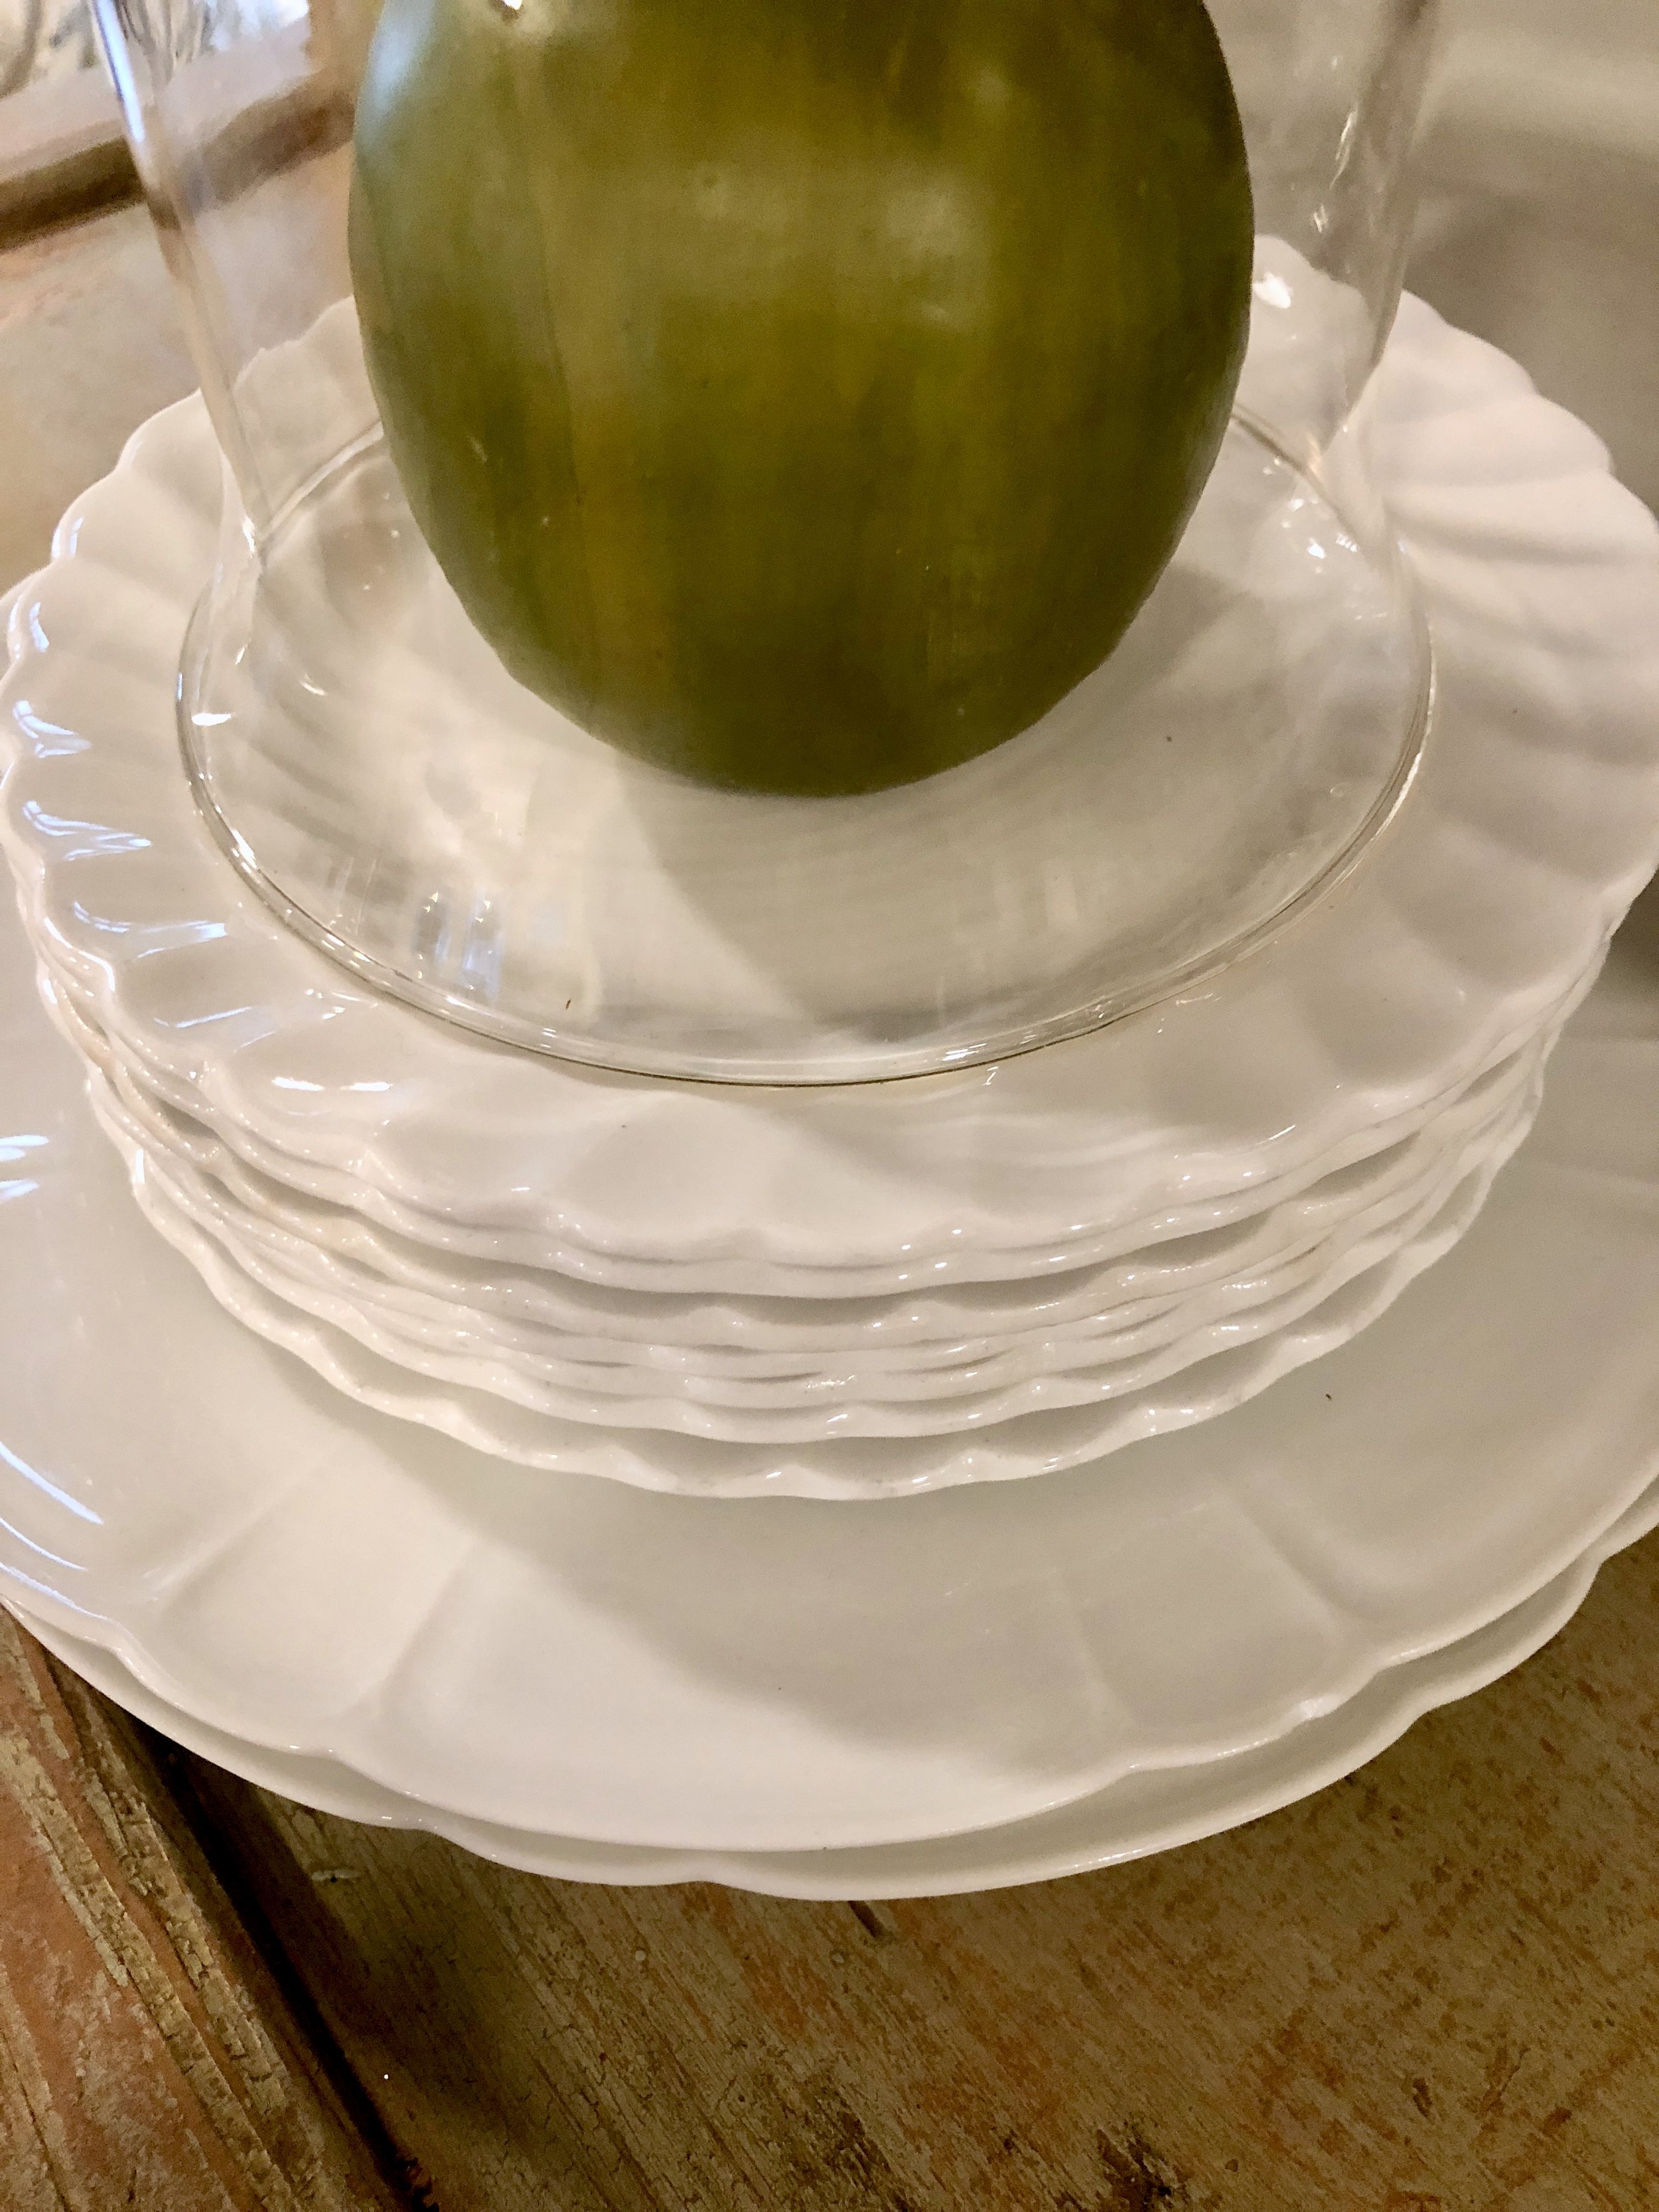 Ironstone plates and Limoges plates